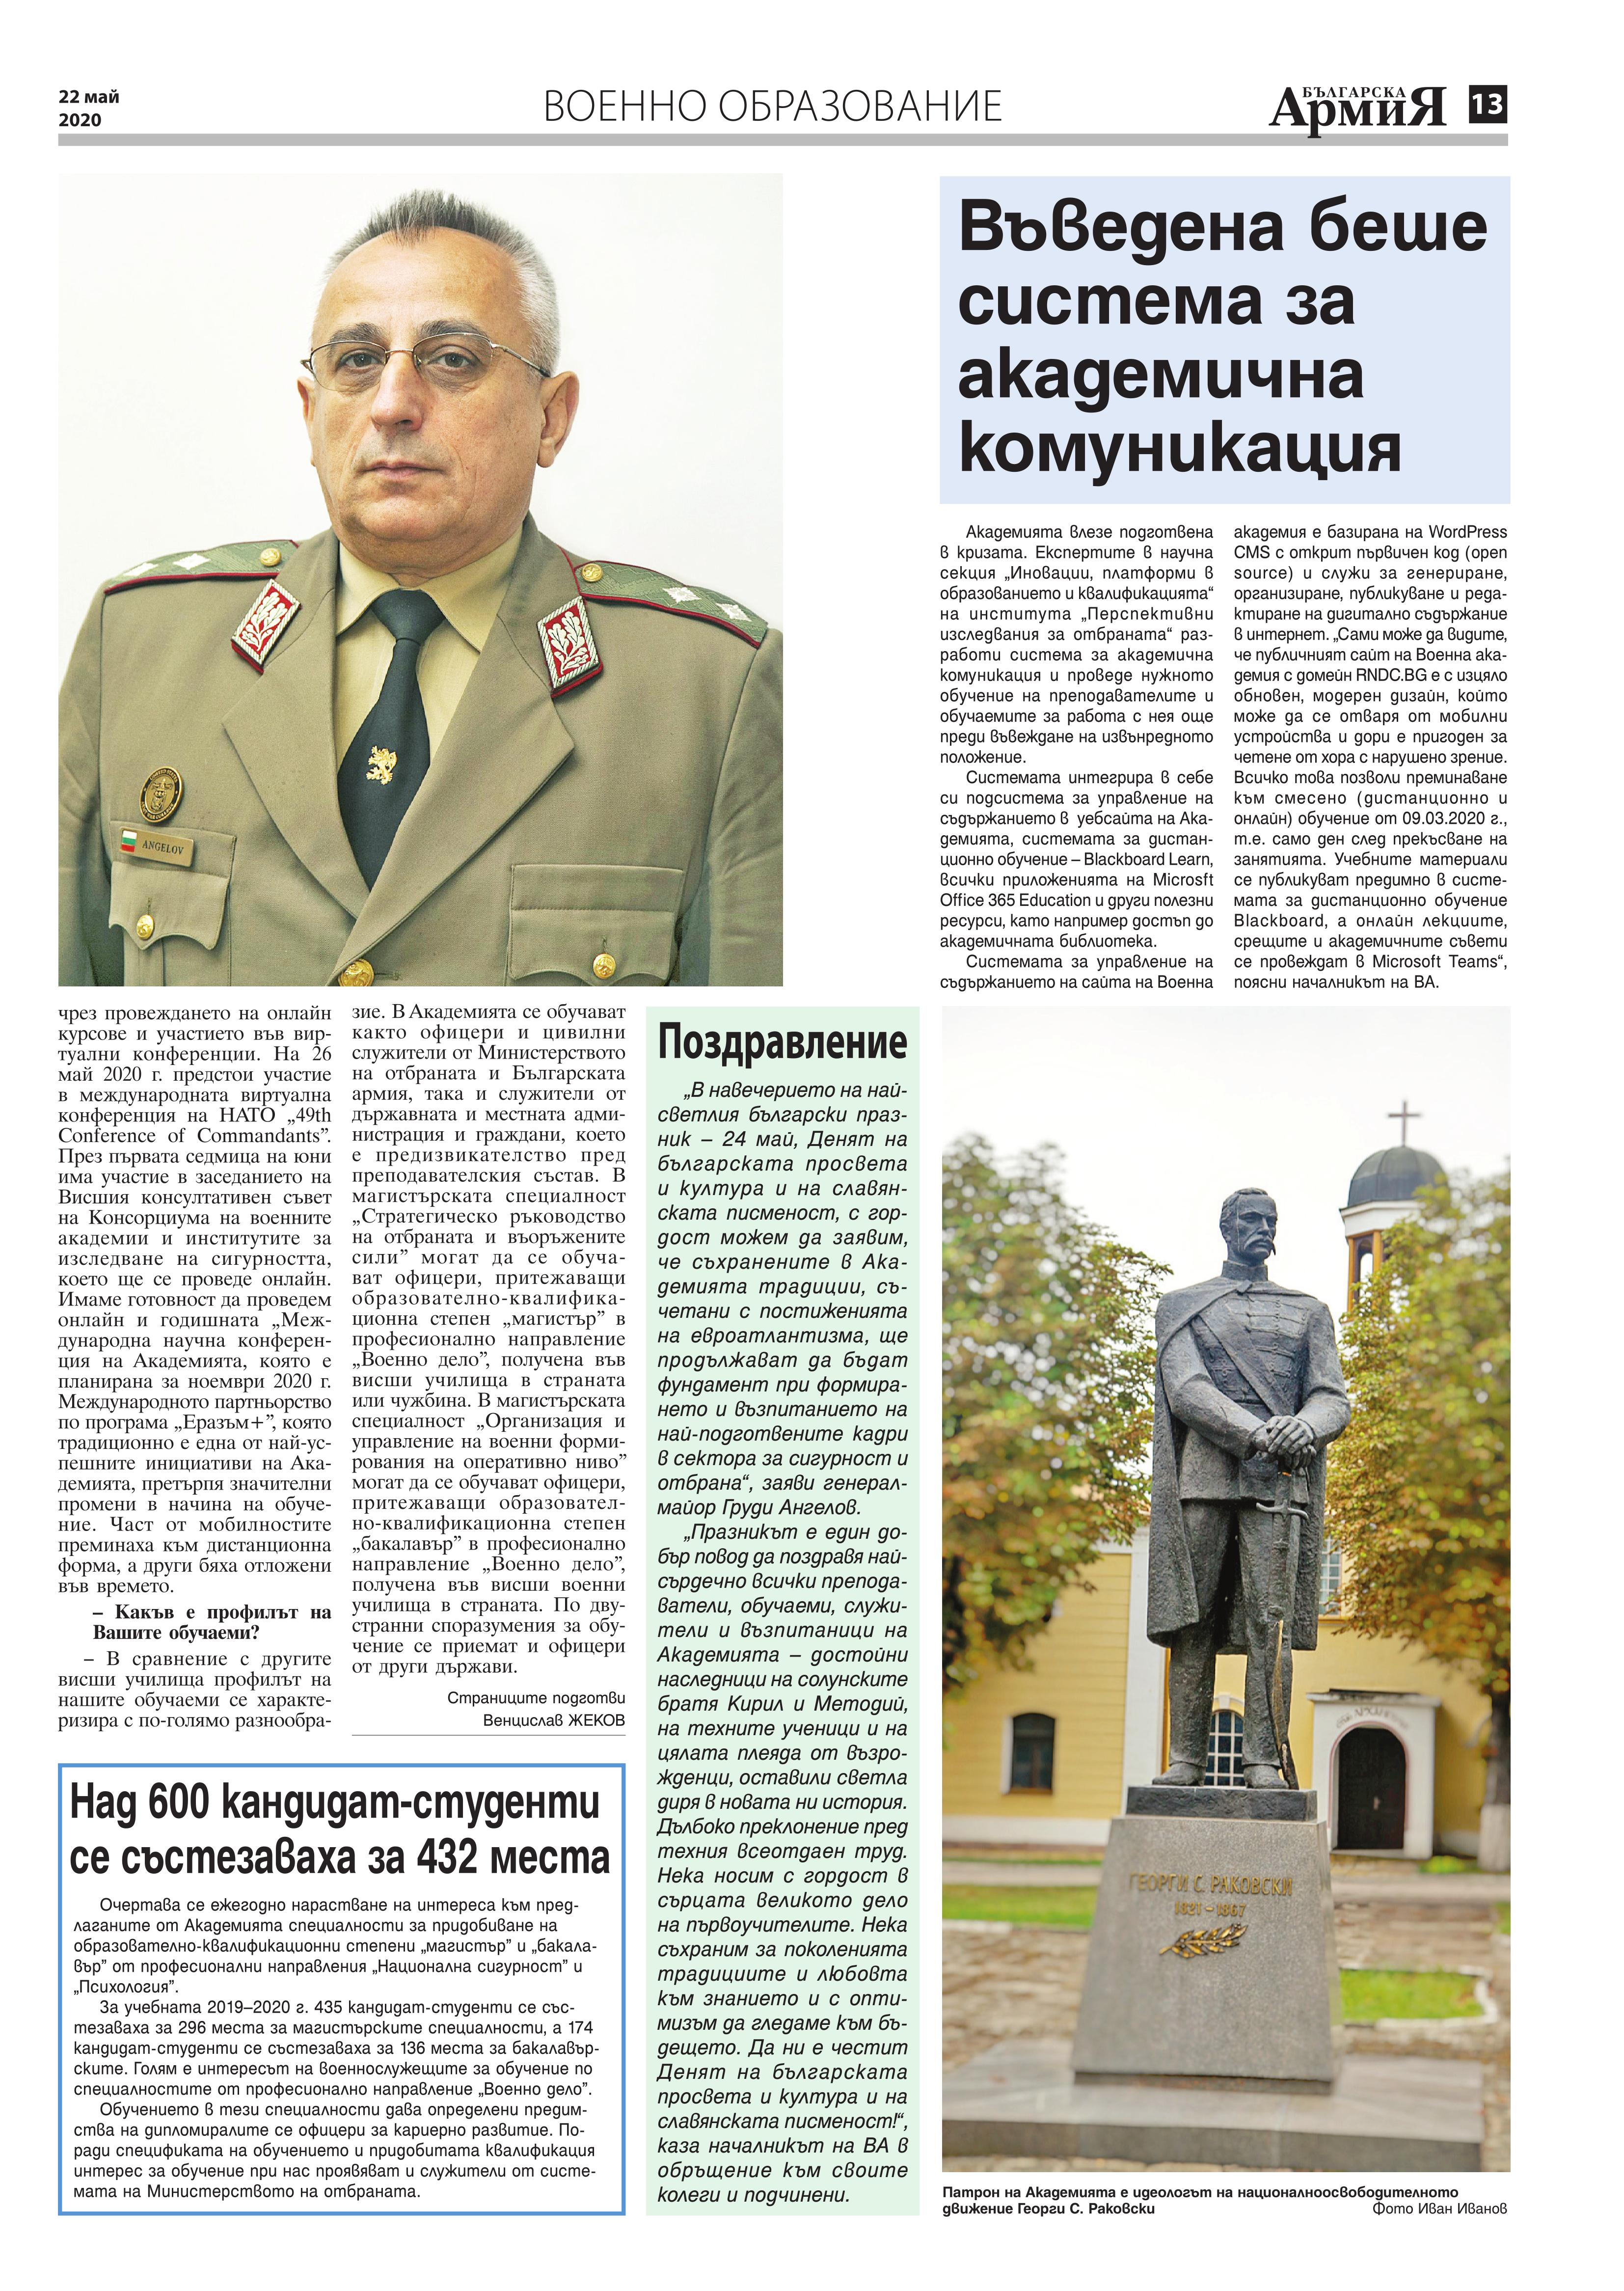 https://www.armymedia.bg/wp-content/uploads/2015/06/13.page1_-140.jpg